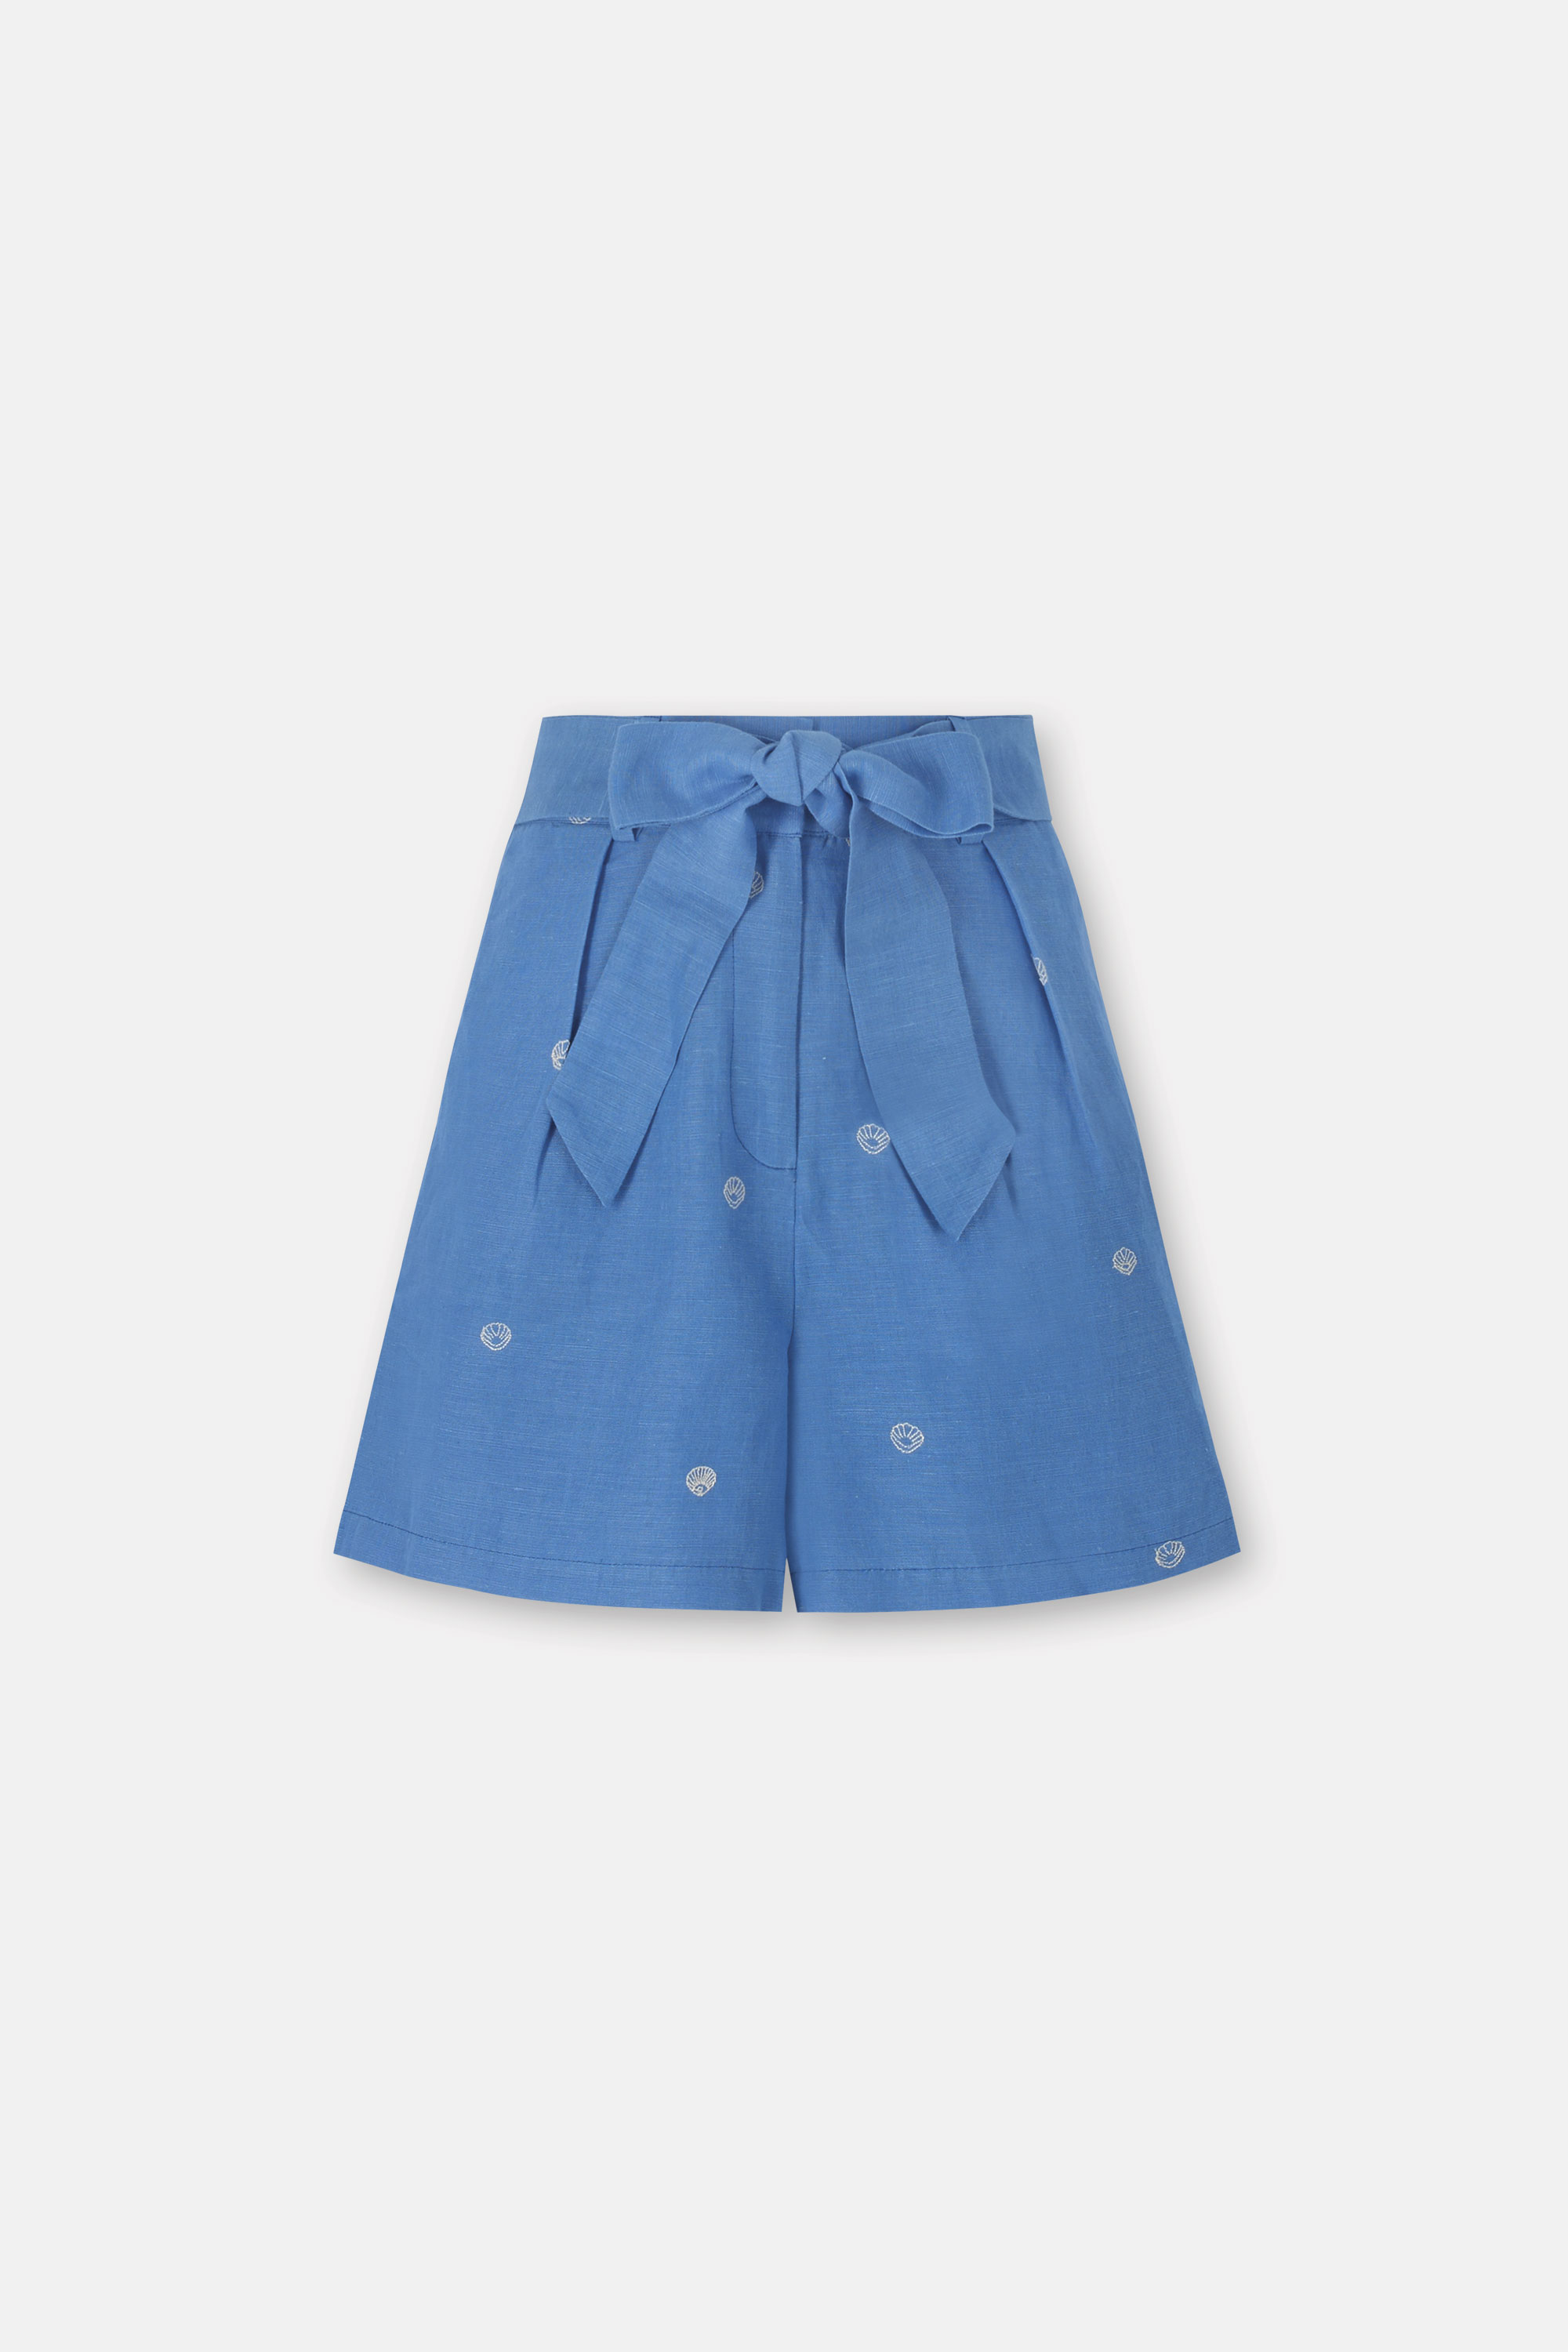 Cath Kidston Embroidered Tie Waist Shorts in Chambray, Seaside Shells, 100% Linen, 14